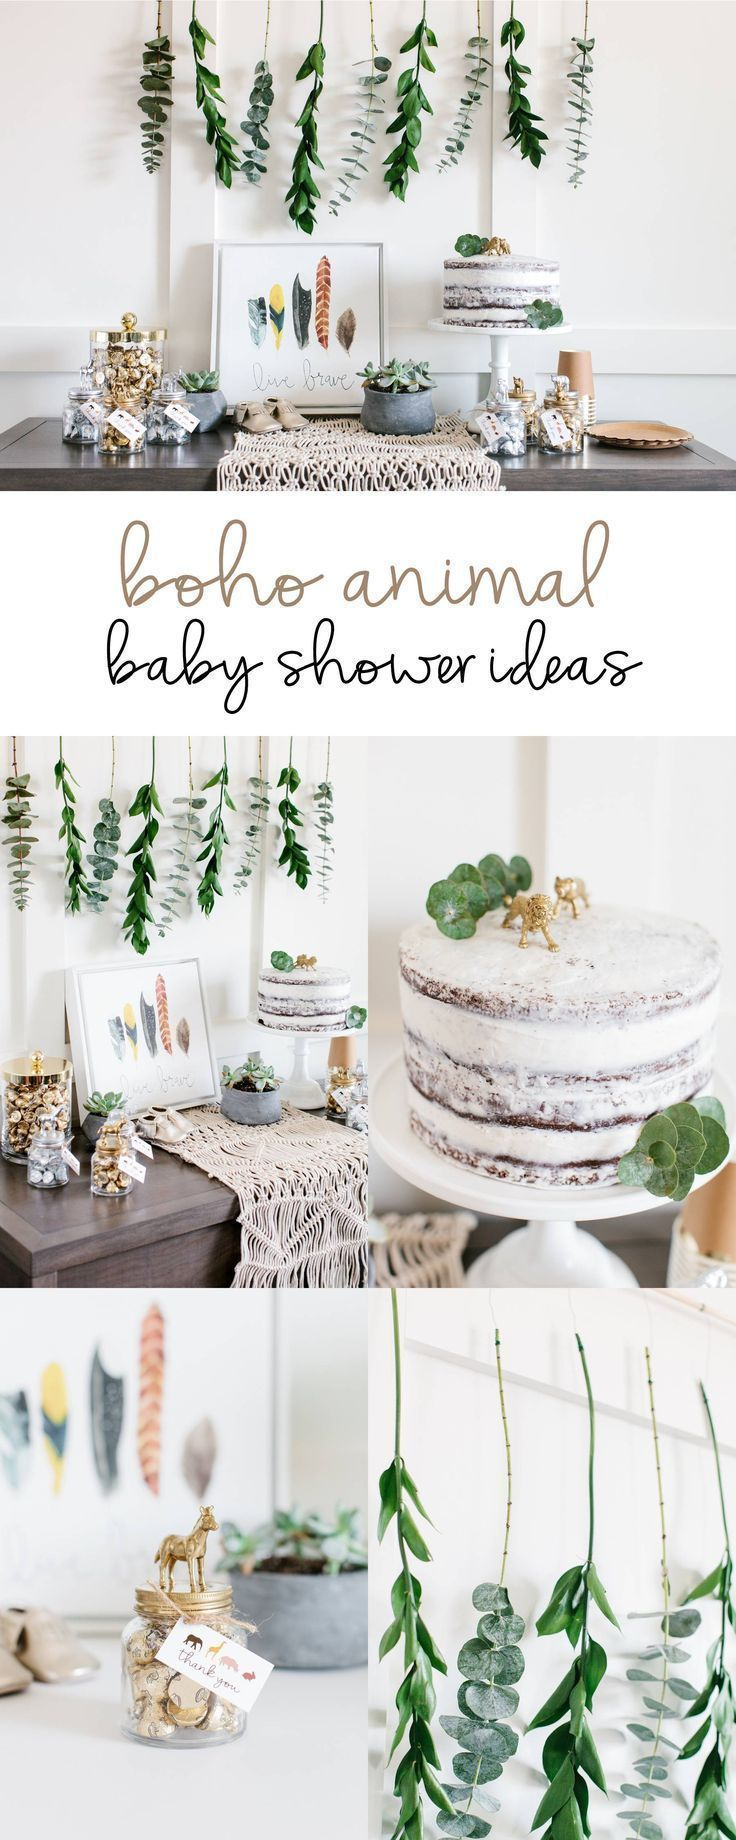 Boho Animal Baby Shower Ideas | Styled by The TomKat Studio #babyshowerideas